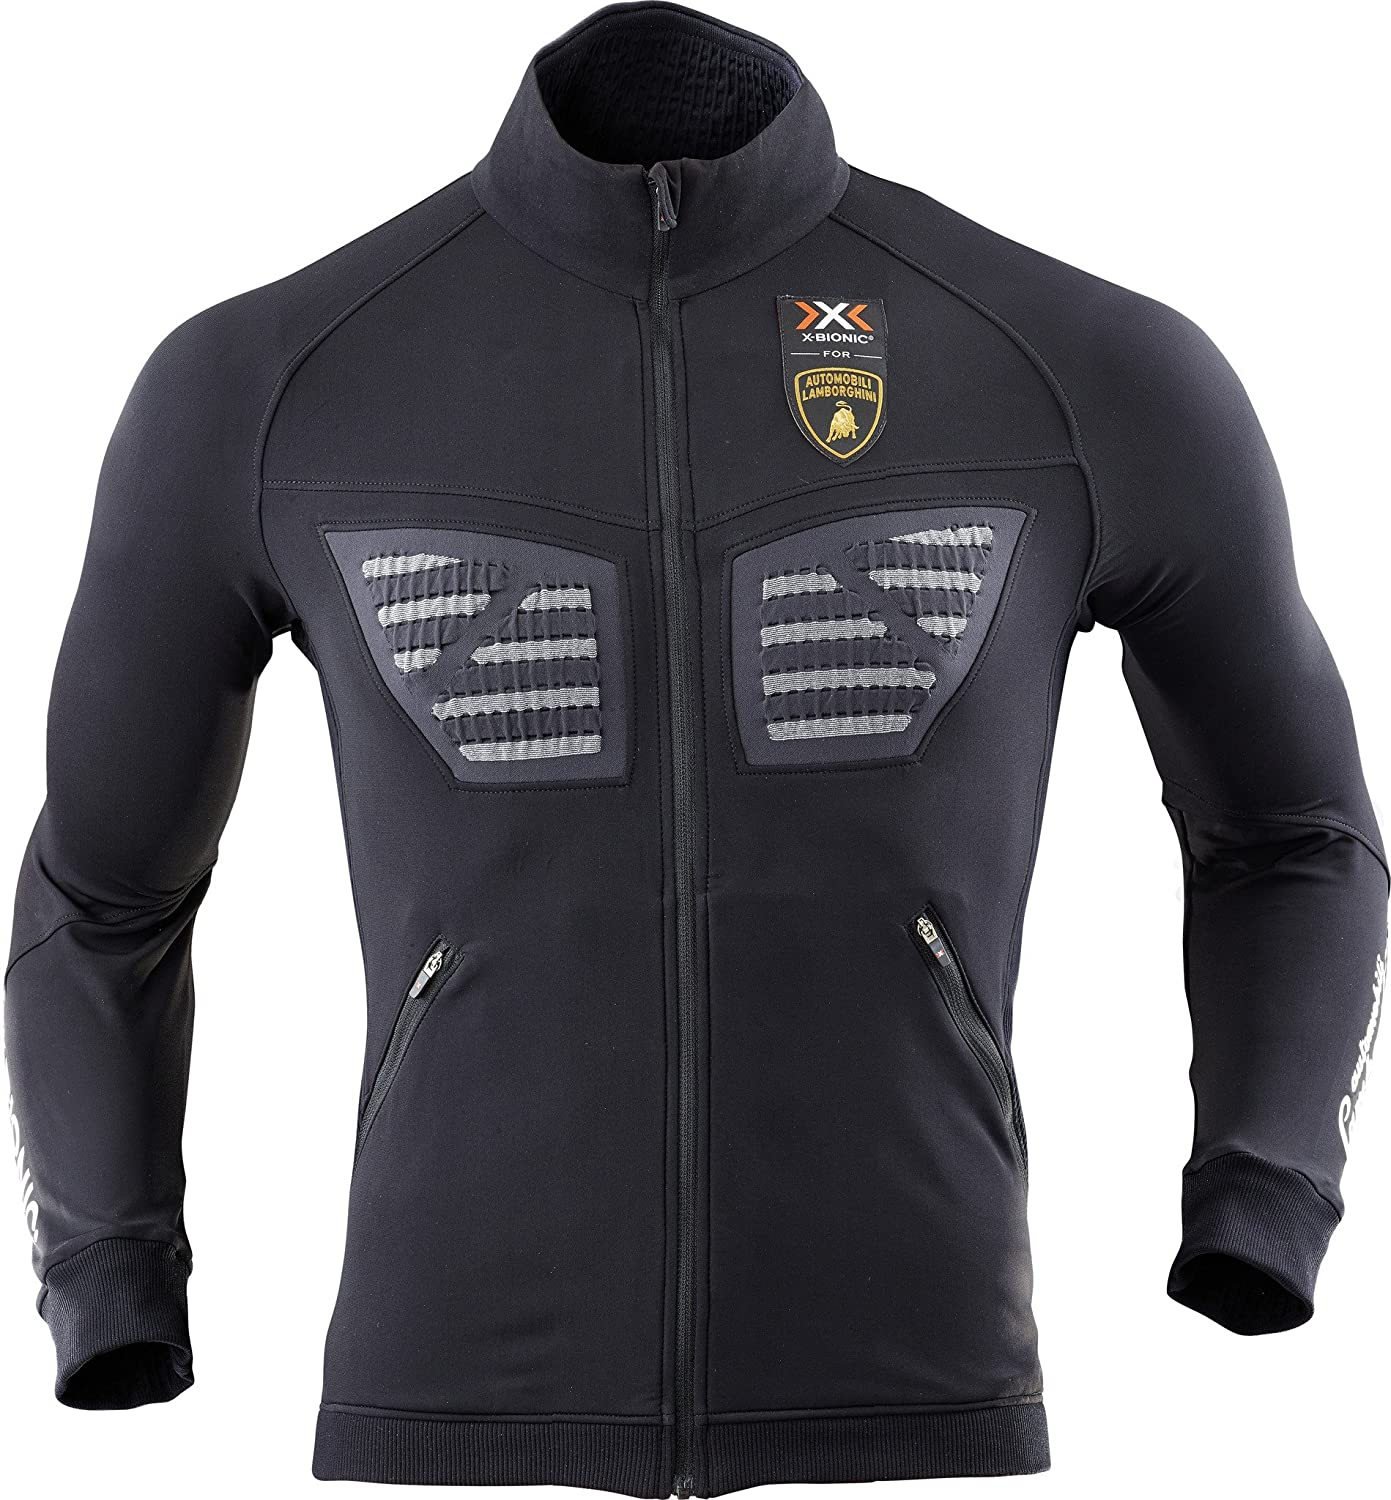 X-BIONIC for Automobili Lamborghini Outdoor Racoon Jacket Black-Anthracite